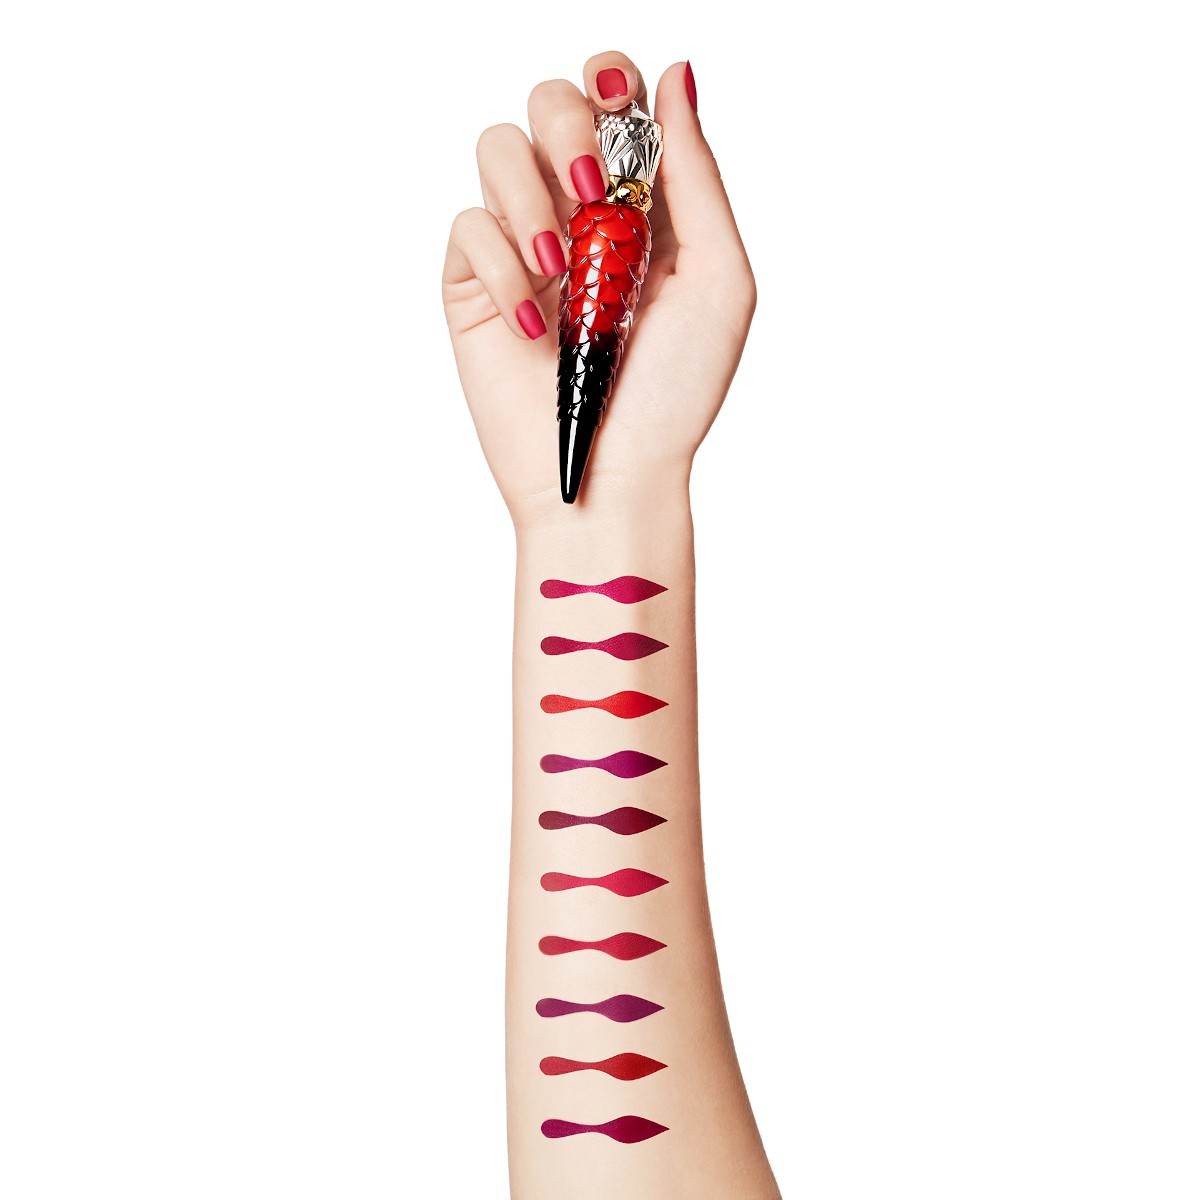 Beauty - Corset D'amour Matte Fluid Lip Colour - Christian Louboutin